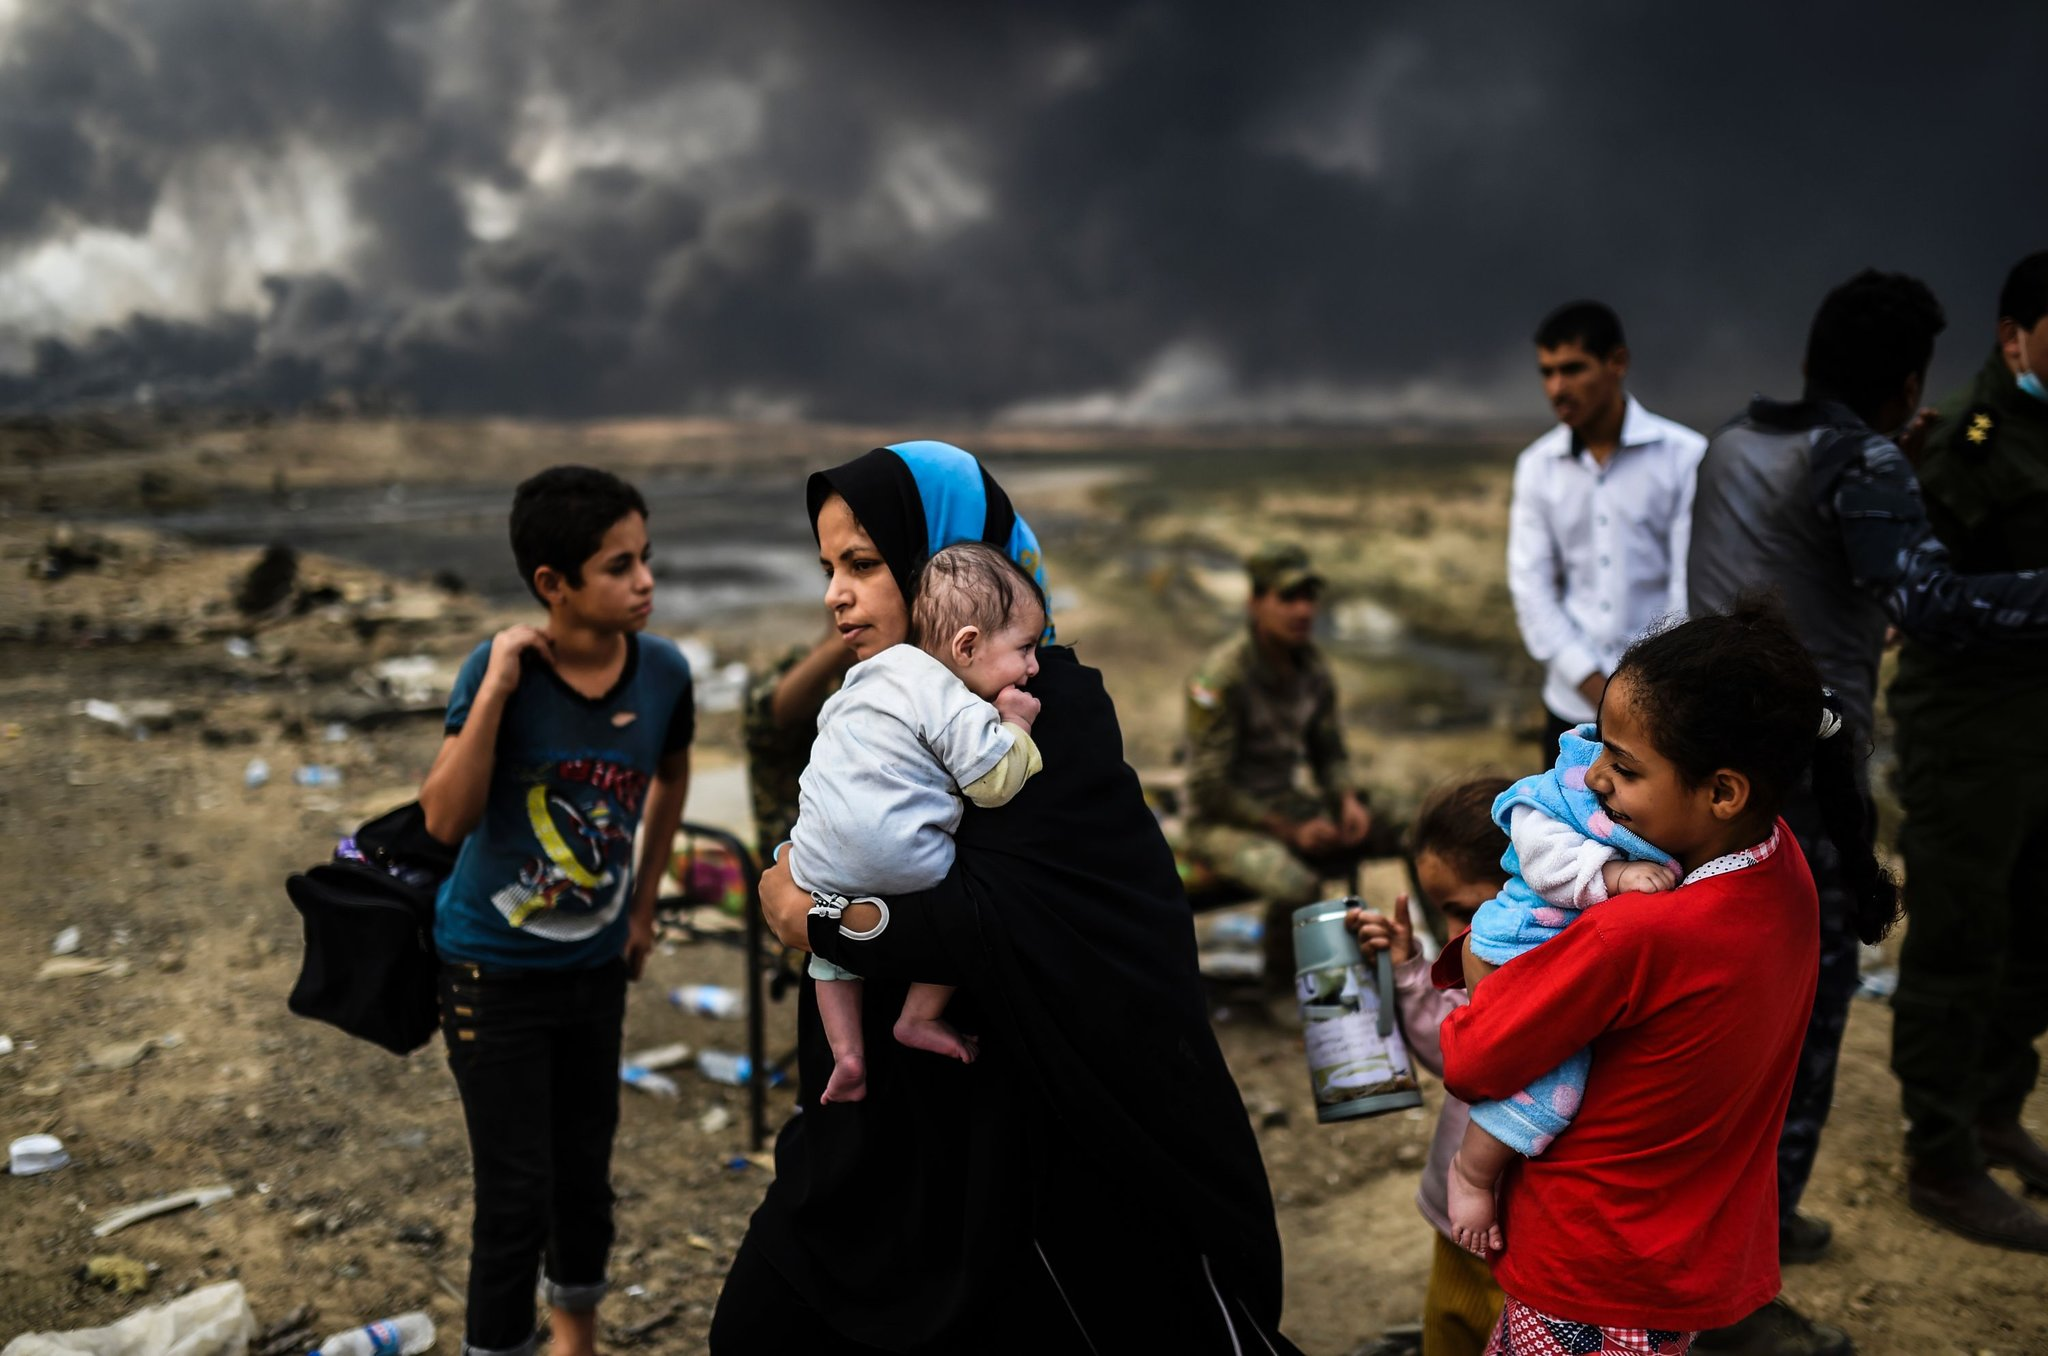 Up to 20,000 civilians trapped in Daesh-held areas of Mosul: UN